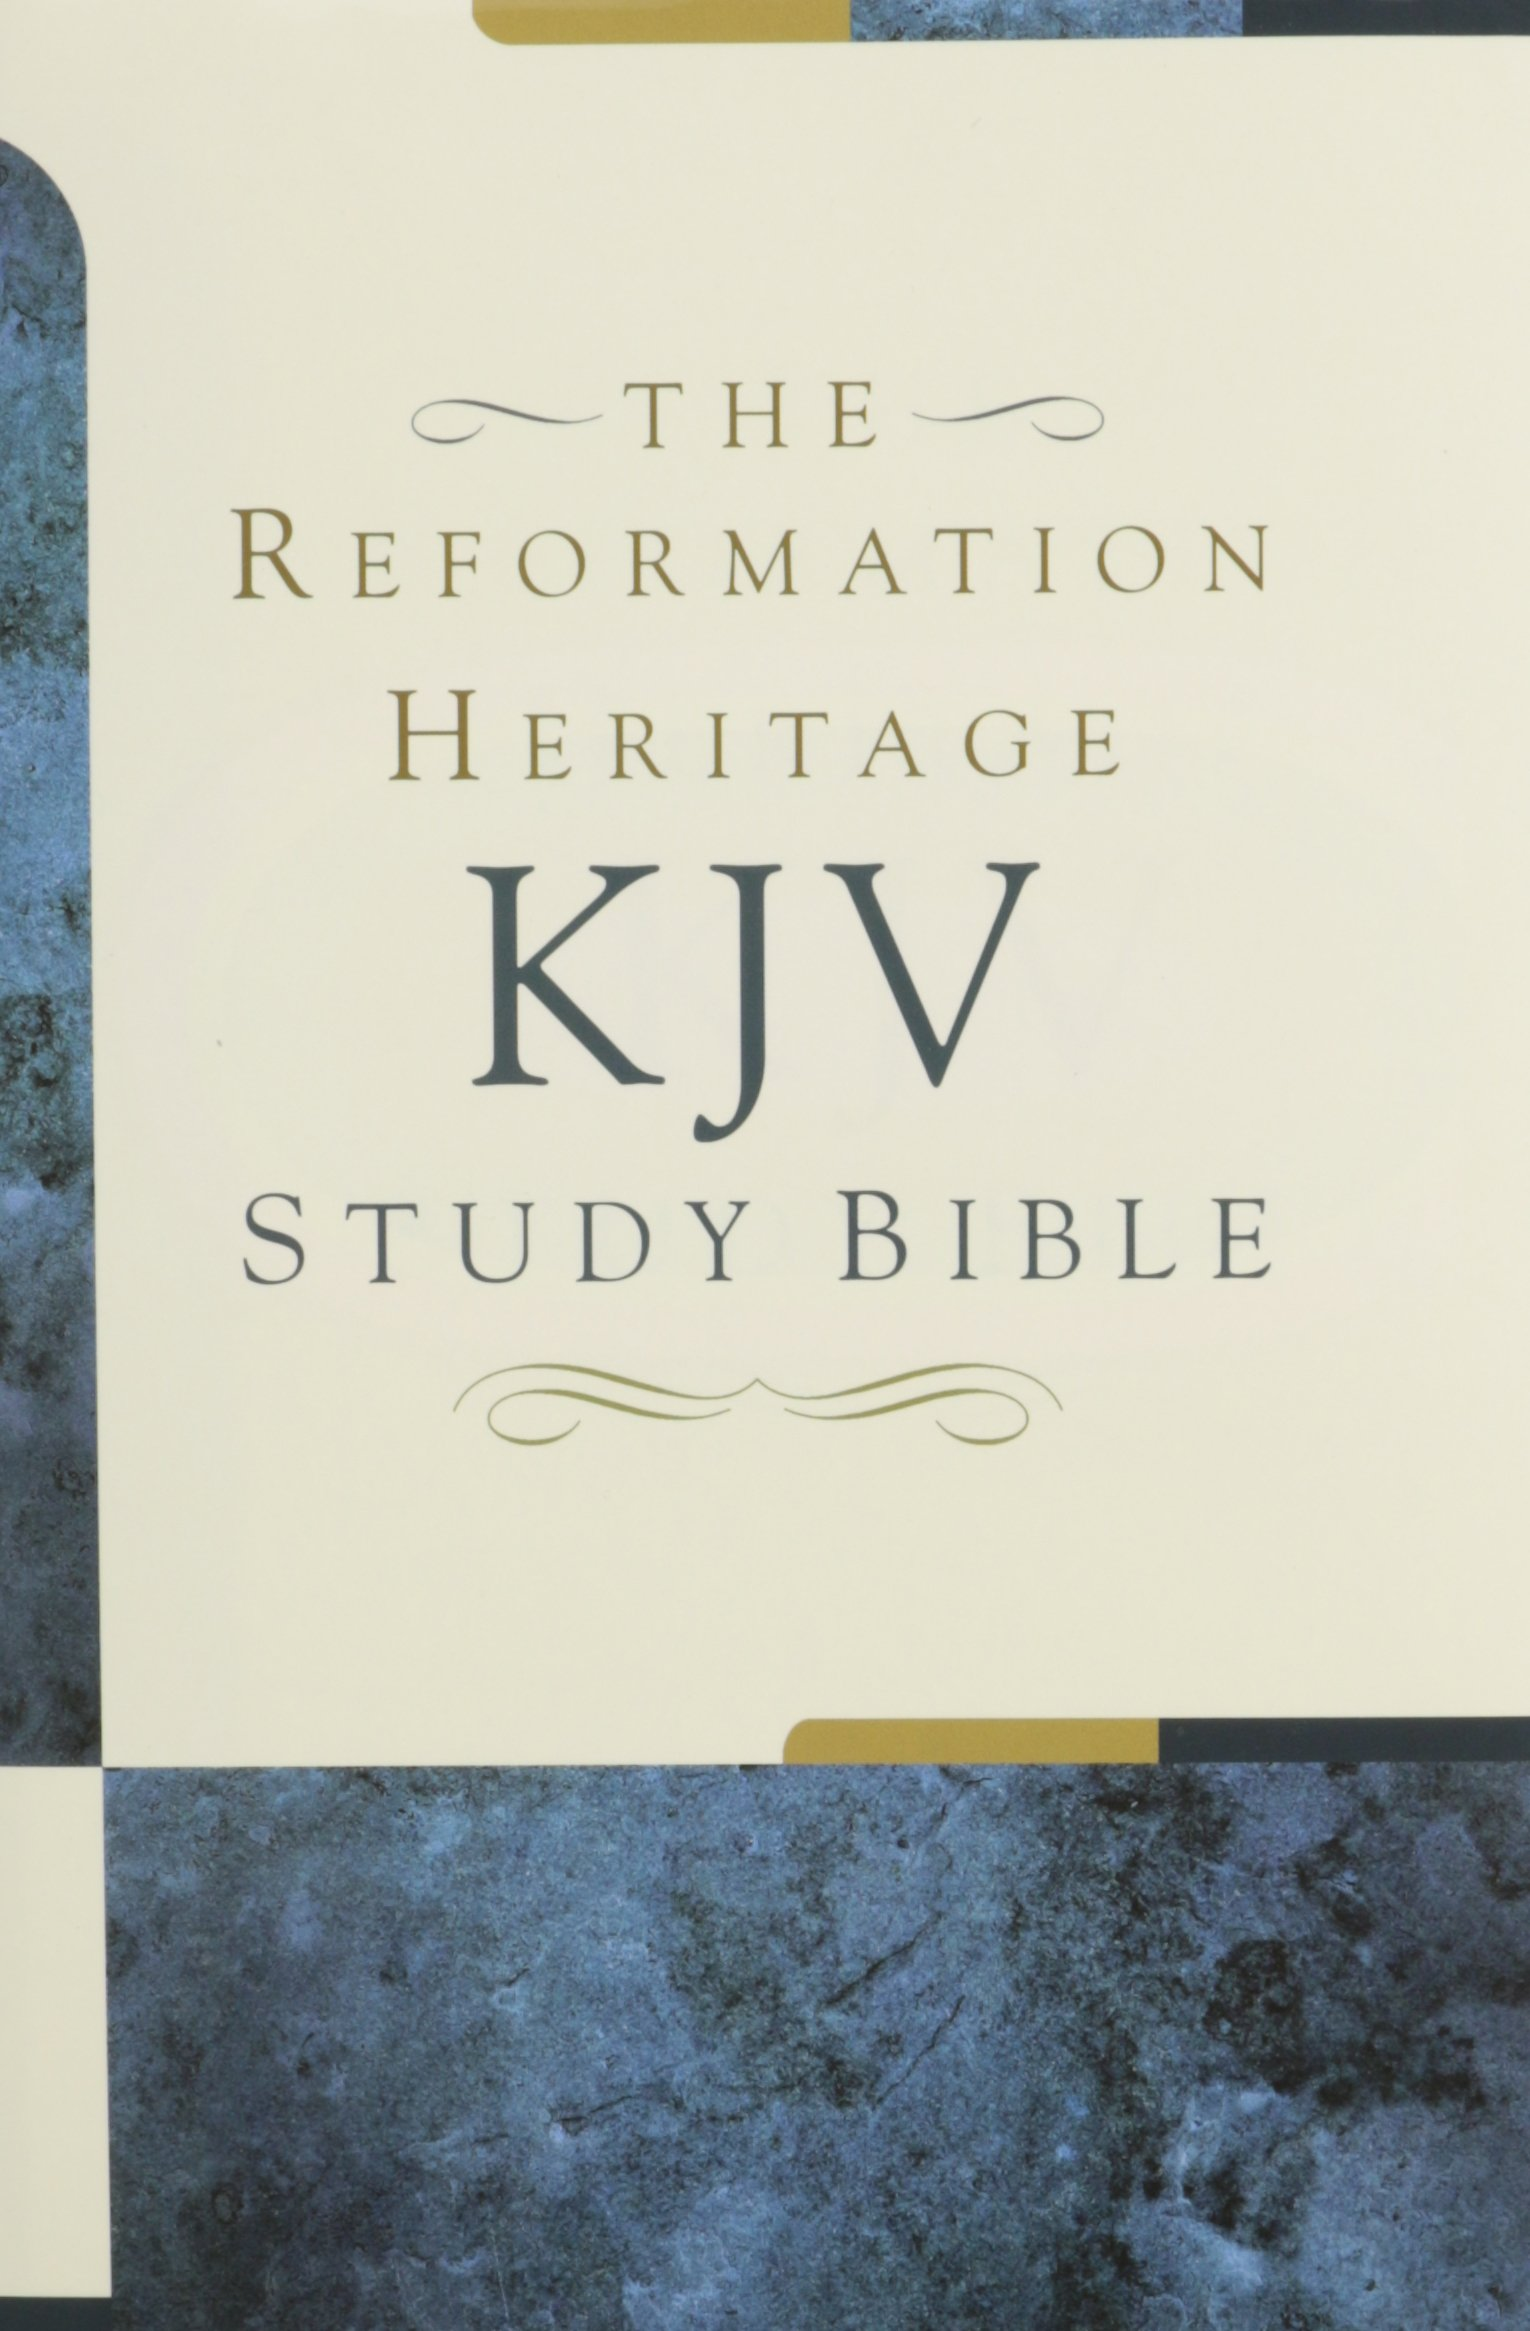 The reformation heritage kjv study bible hardcover joel r beeke the reformation heritage kjv study bible hardcover joel r beeke michael barrett gerald bilkes 9781601783240 amazon books fandeluxe Image collections